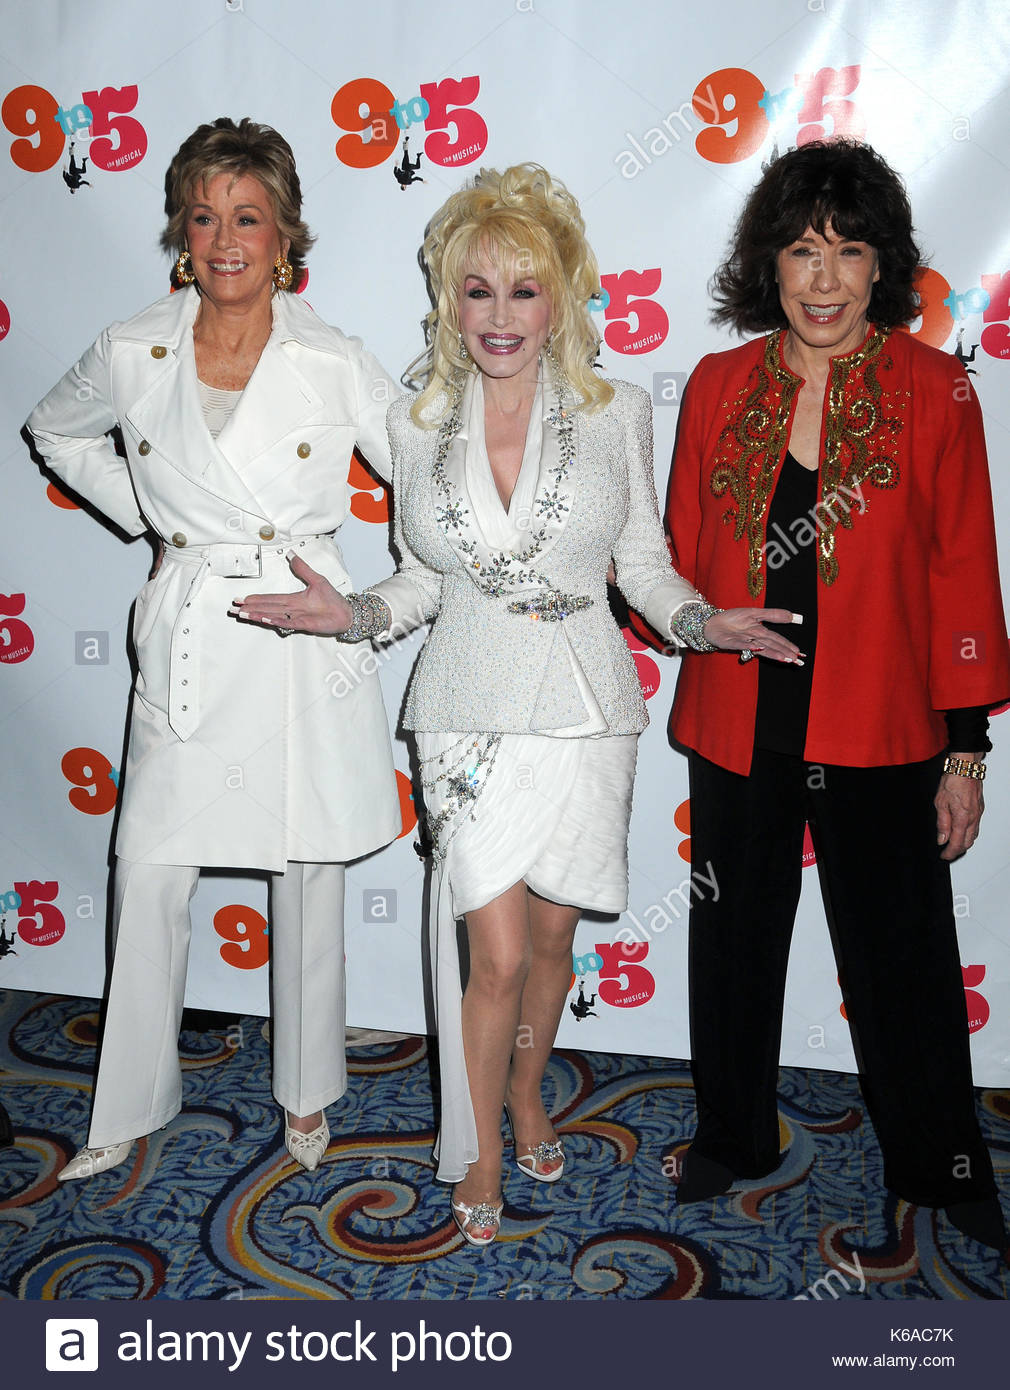 Jane Fonda Dolly Parton And Lily Tomlin The Original Castmates From 9 To 5 Movie Attend Broadway Opening For At